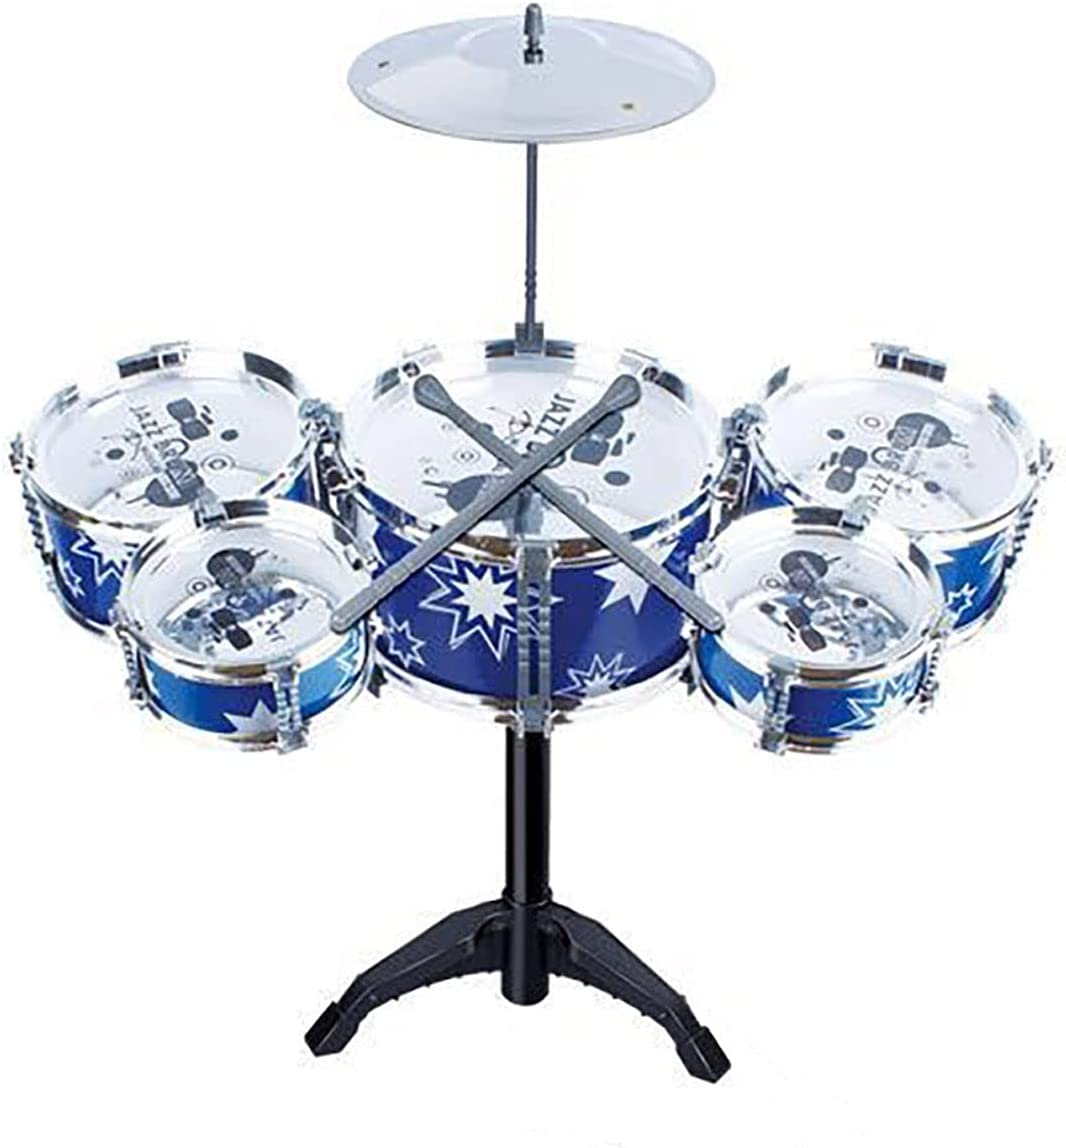 Factory outlet Fun Children's Jazz Drum With Stool Set Washington Mall Durable Kids That